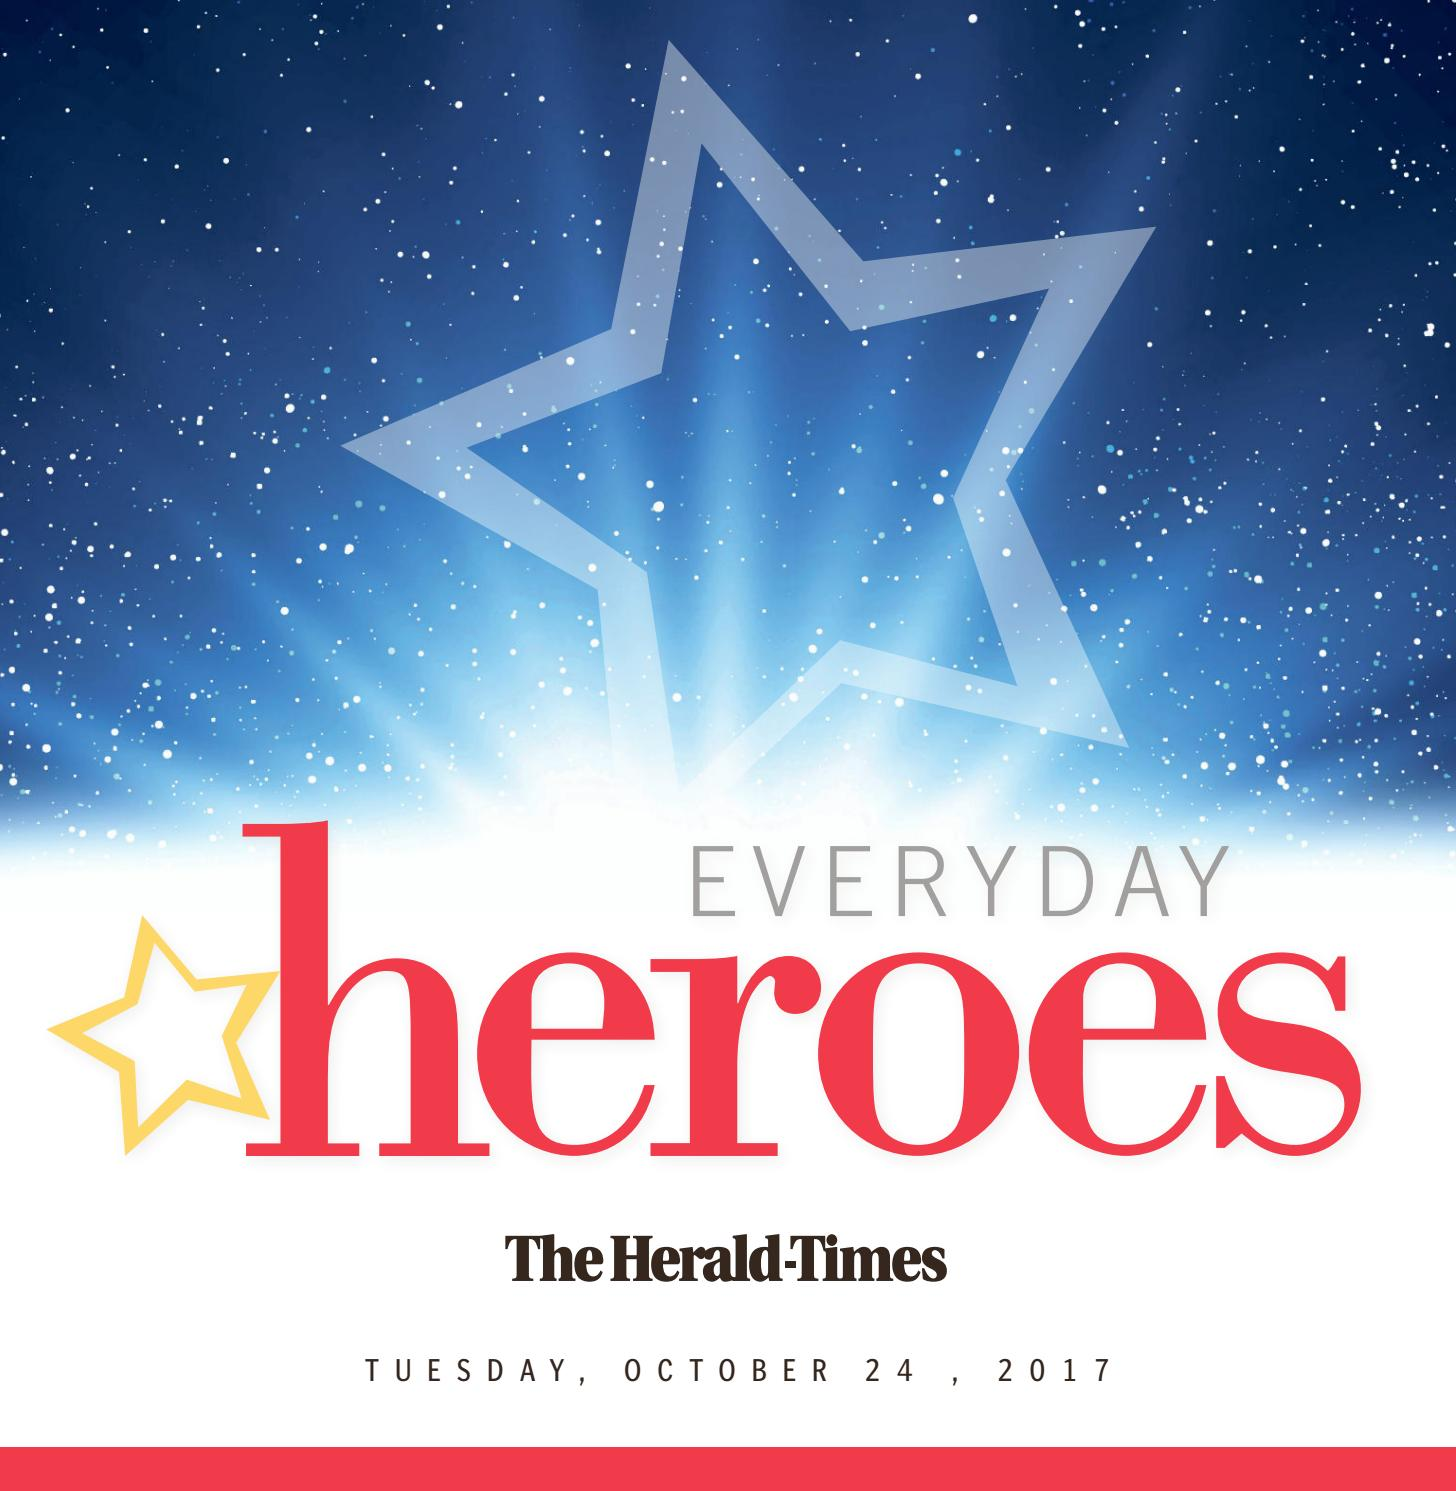 2017 Herald-Times Everyday Heroes by Hoosier Times Inc. - issuu